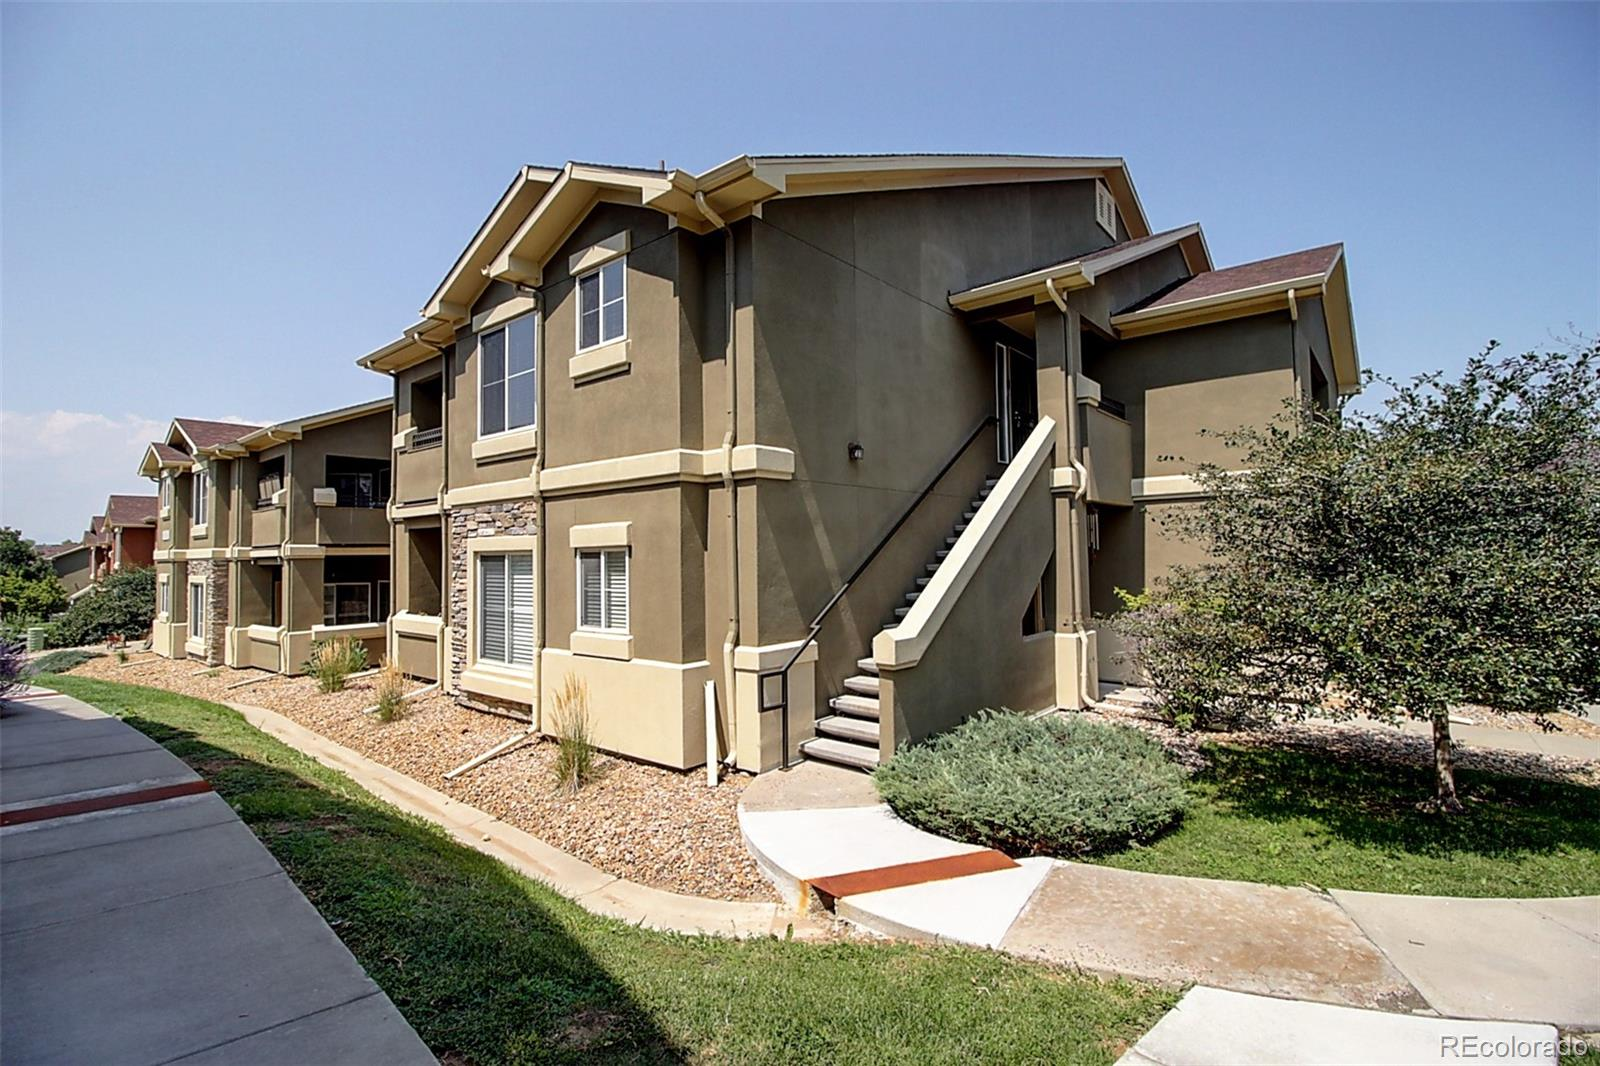 3 Bedroom, 2 Bathroom condo in Shadow Canyon! The 2nd-floor unit has a detached garage and a covered patio with extra storage! Open floor plan between the Living Room with gas fireplace, Dining Room, and Kitchen. The kitchen features granite slab countertops, black/stainless-steel appliance mix, and barstool seating x4. Primary Bedroom features a private bathroom and walk-in closet. Washer/Dryer in the unit. Shadow Canyon is a gated community, near Highlands Ranch and C-470. Easy commute to downtown Denver, the DTC, and Park Meadow's Mall. 5 minutes to numerous parks and golf courses. Amenities include a community pool, Clubhouse, and Exercise Room. Close to Public Transit!